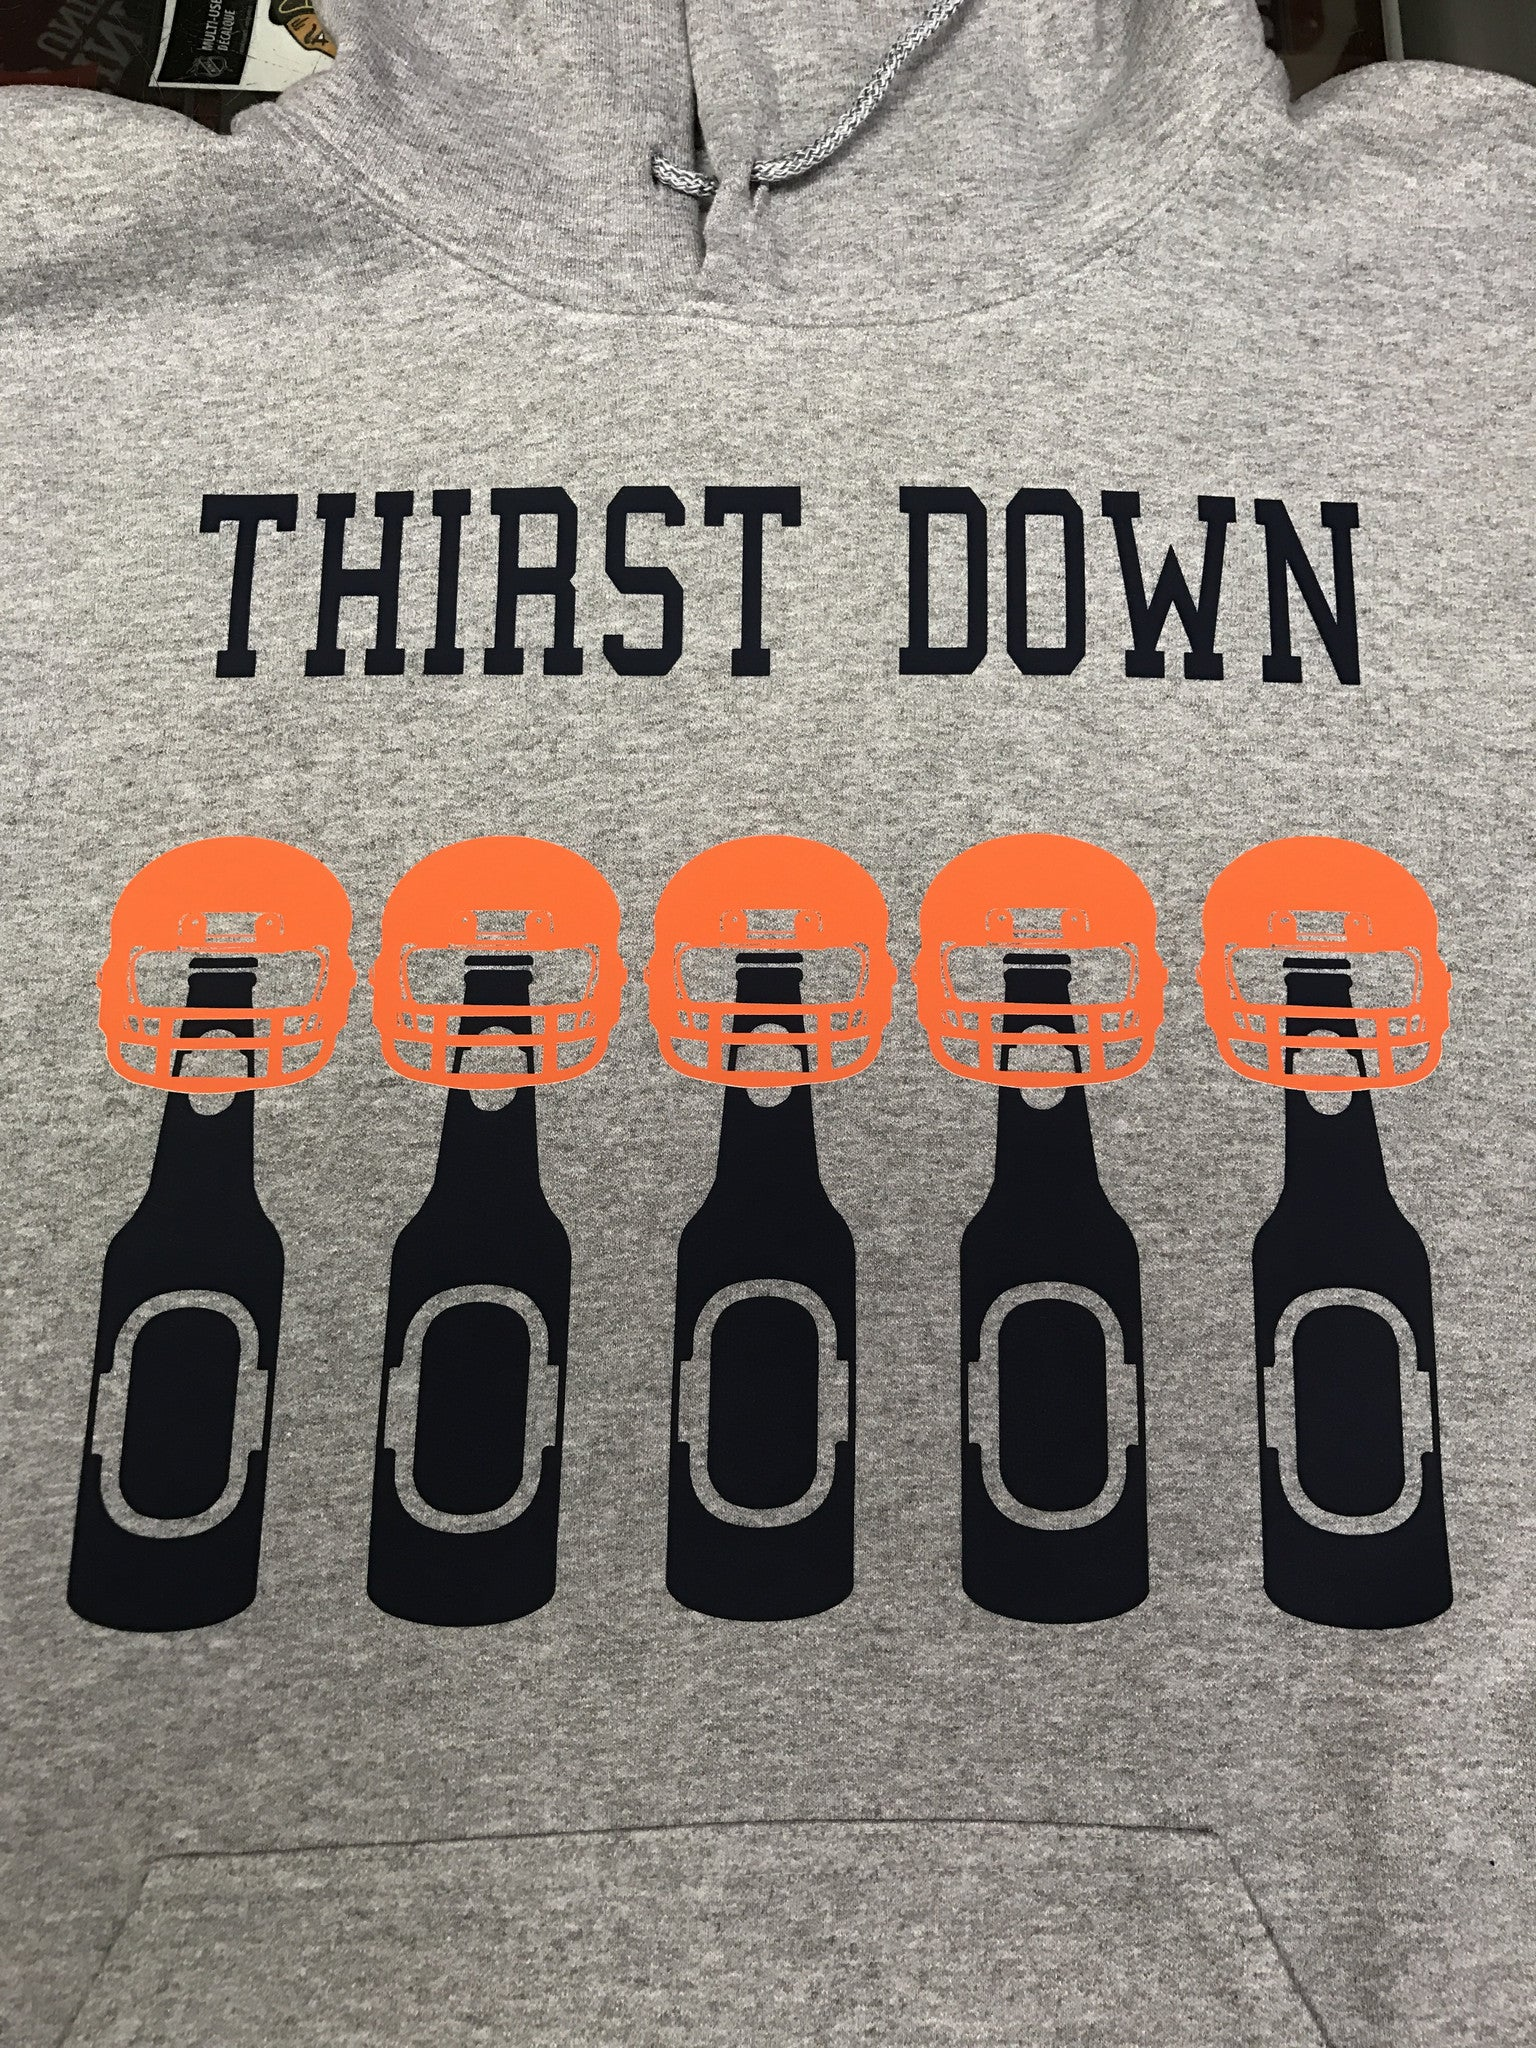 Thirst Down Football and Beer Fan Hoodie - Customize